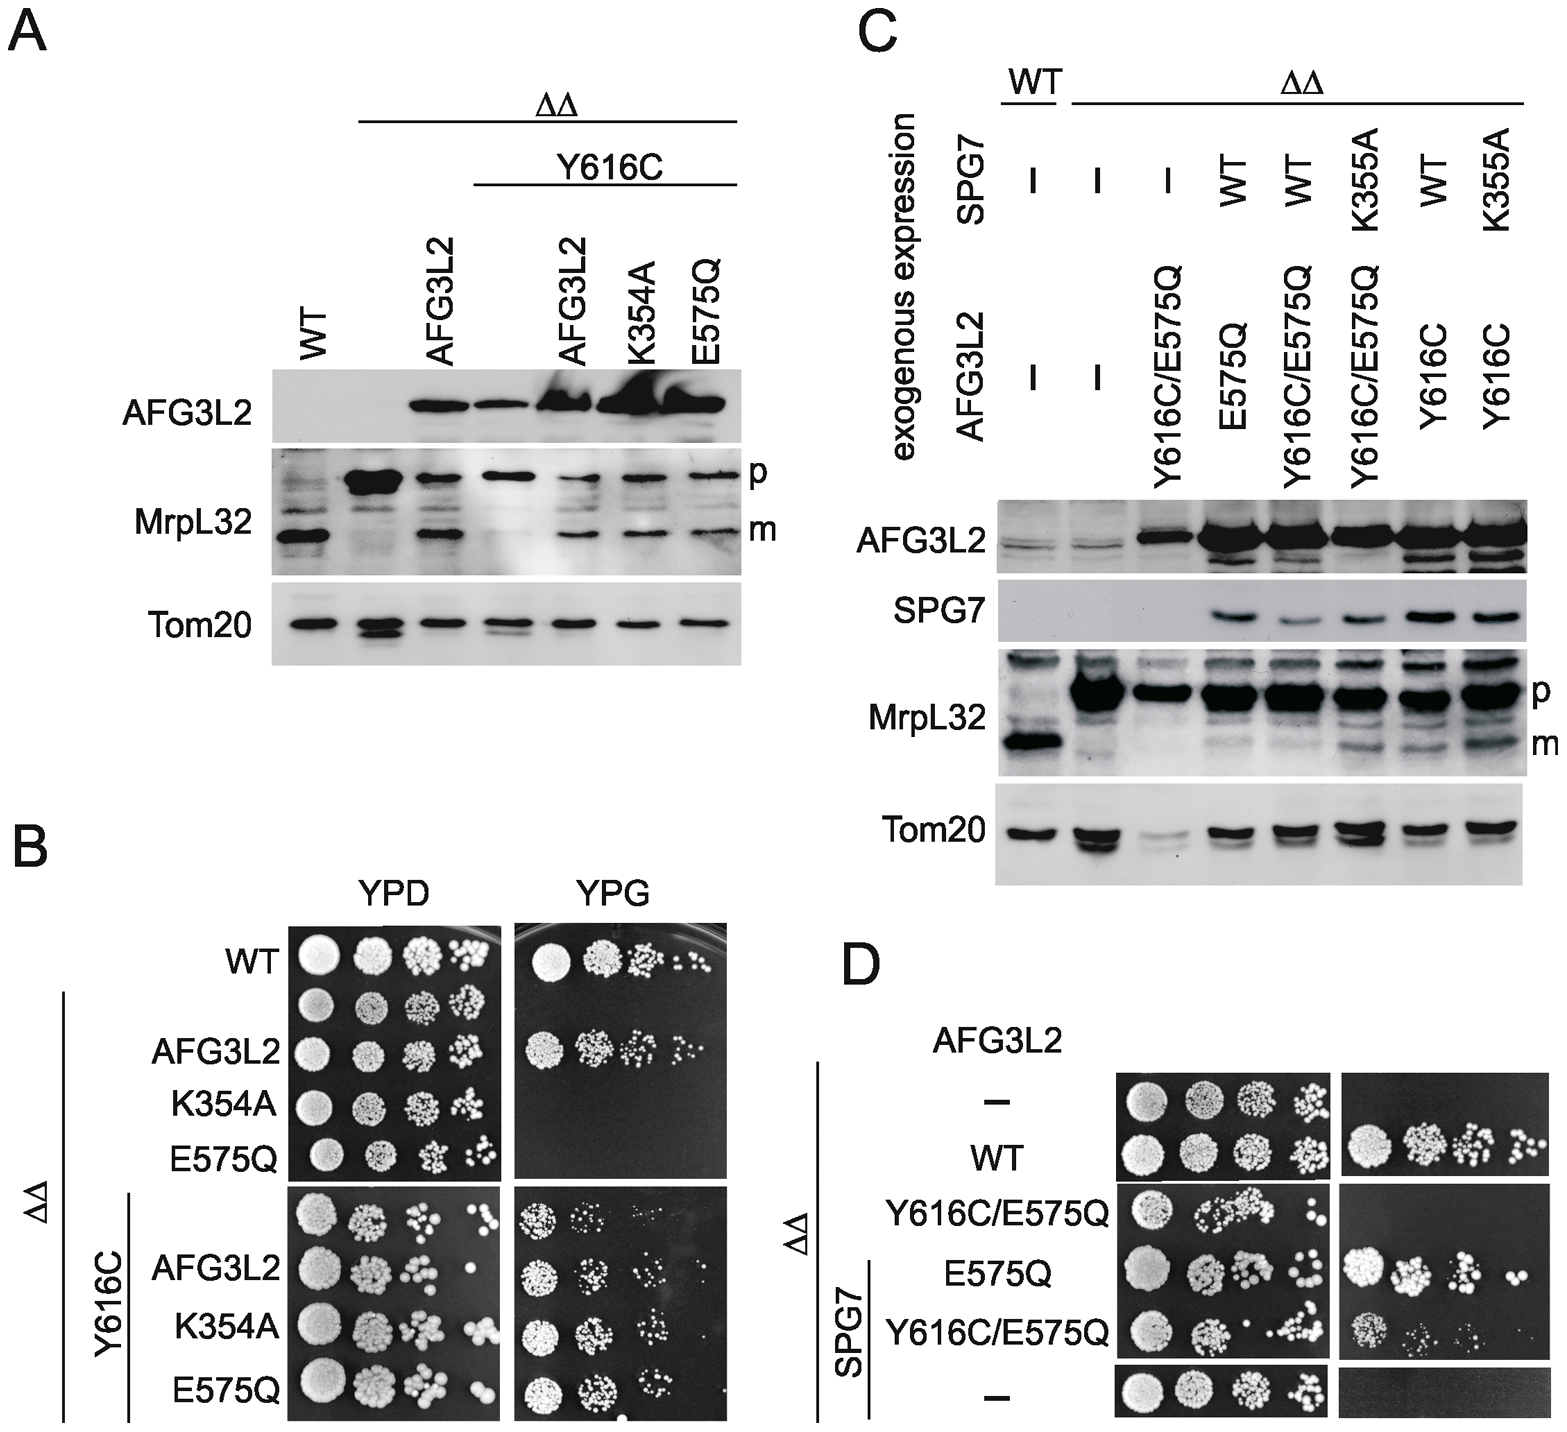 MrpL32 maturation and yeast complementation assays for the evaluation of AFG3L2<sup>Y616C</sup> activity.